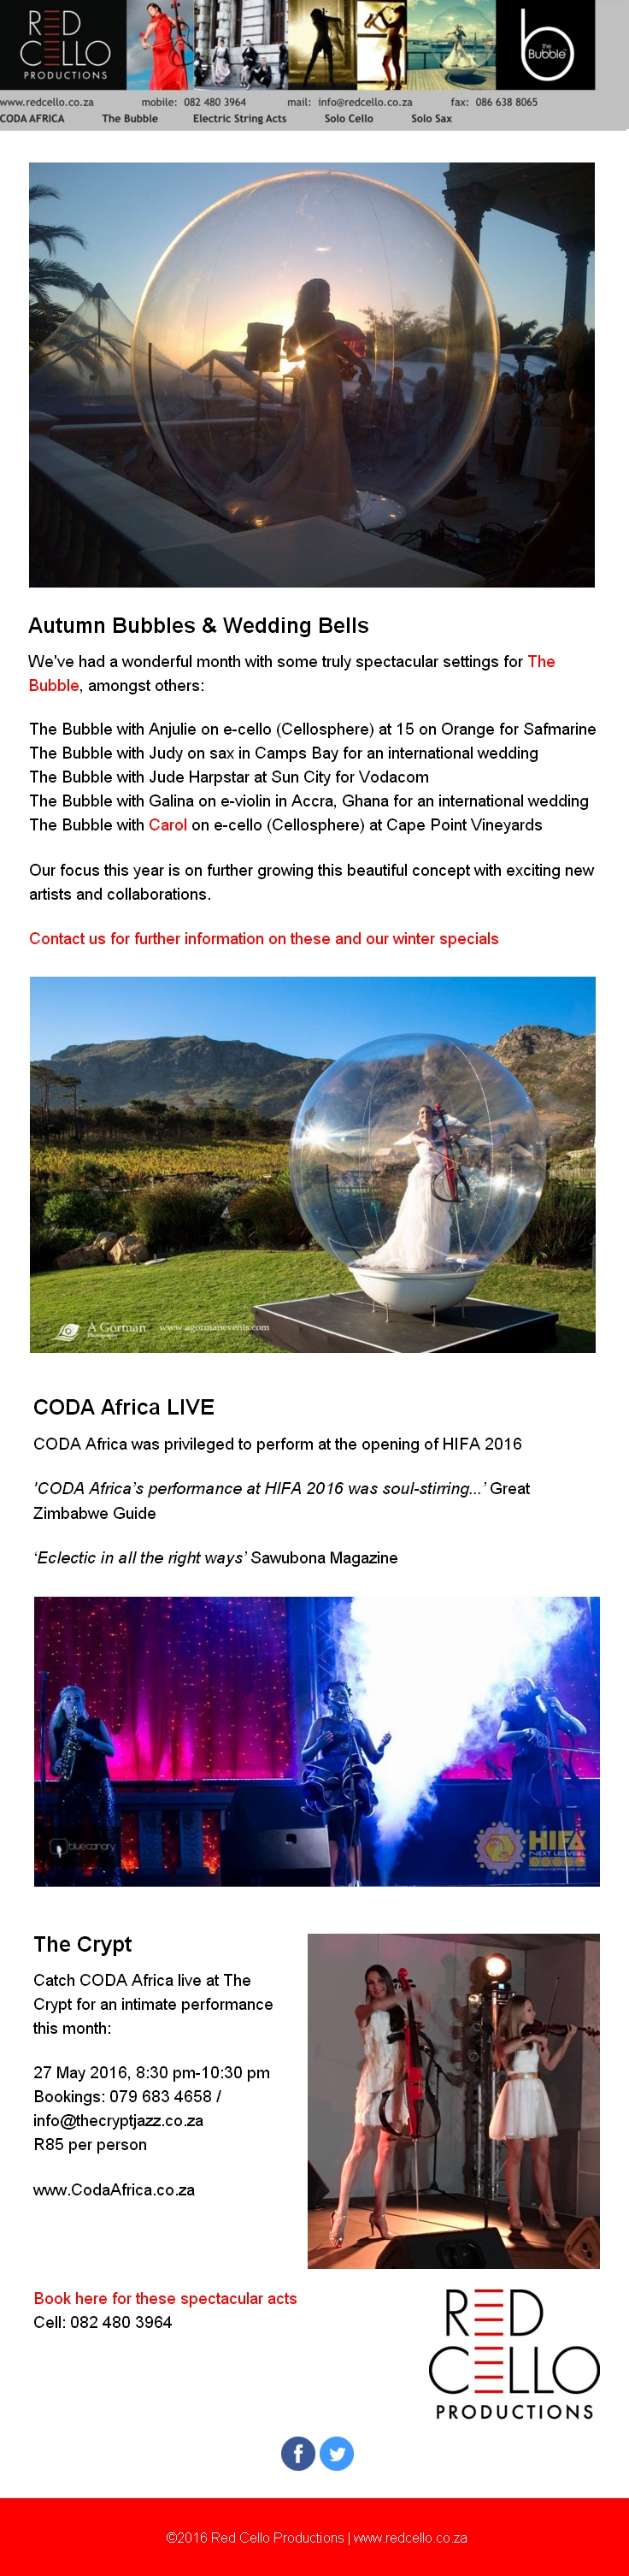 CODA Africa at The Crypt & Wedding Bubbles